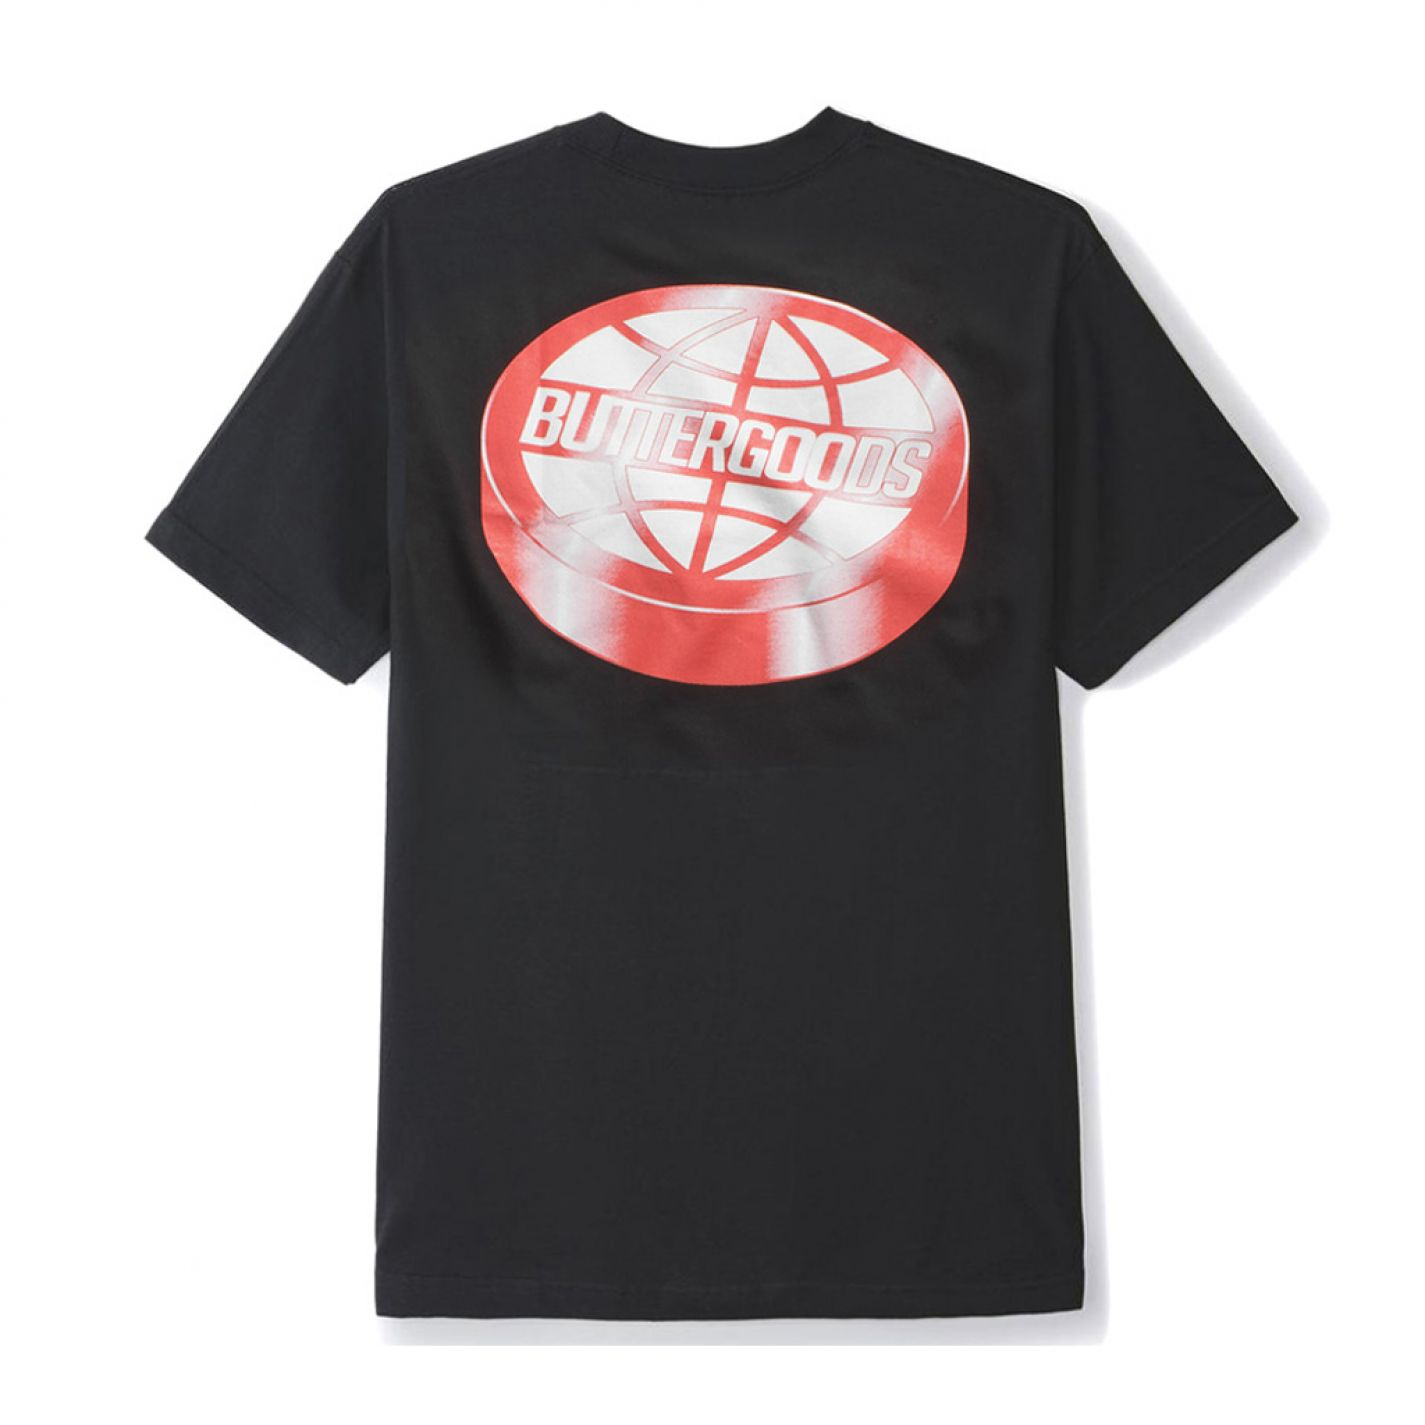 Butter Goods Disk Tee Black